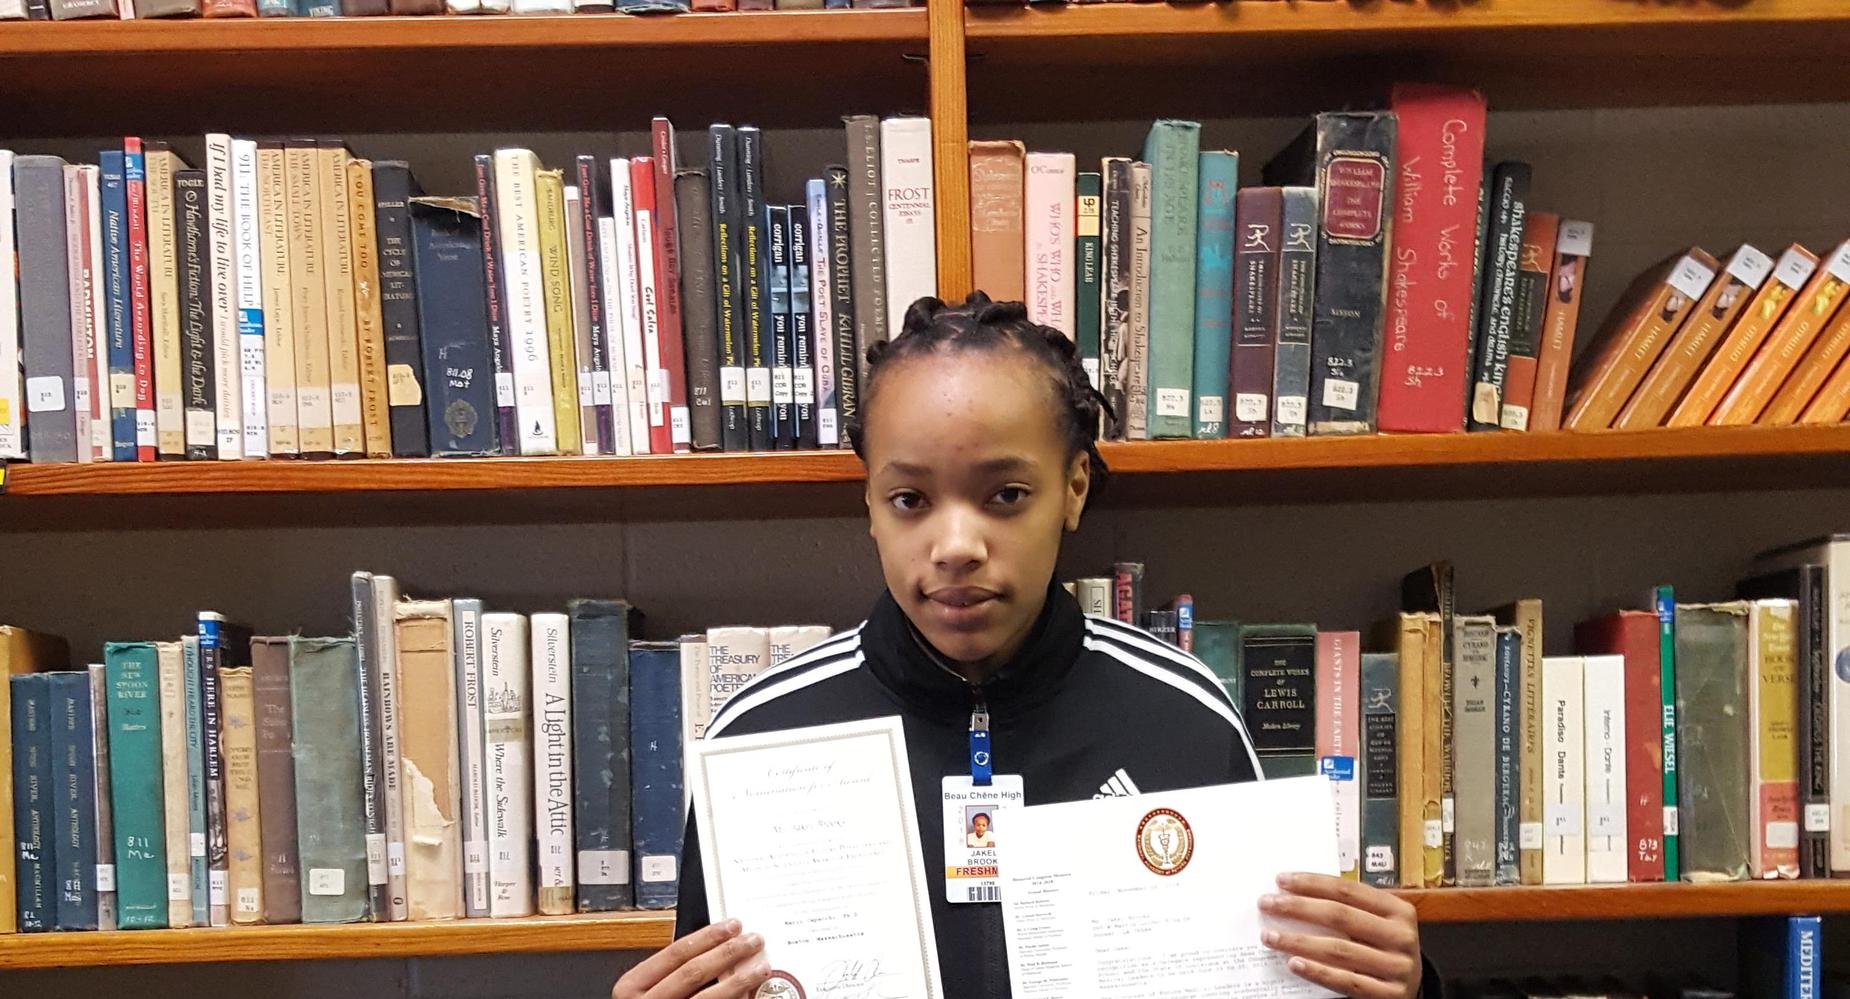 Jakel Brooks was nominated for the National Academy of Future Physicians and Medical Scientists Award of Excellence.